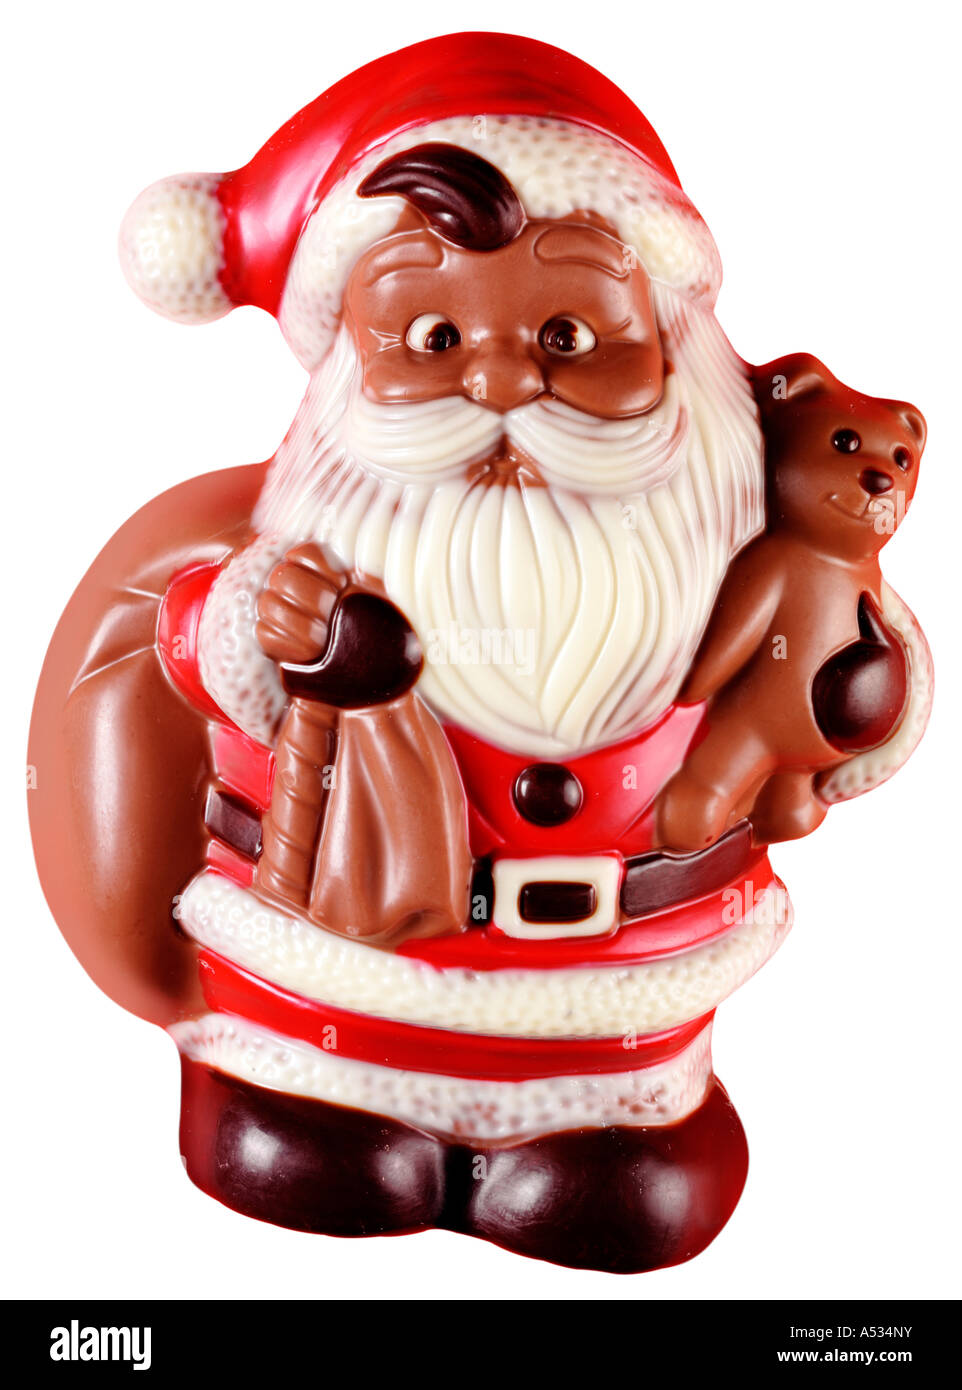 CHOCOLATE CHRISTMAS SANTA CUT OUT - Stock Image